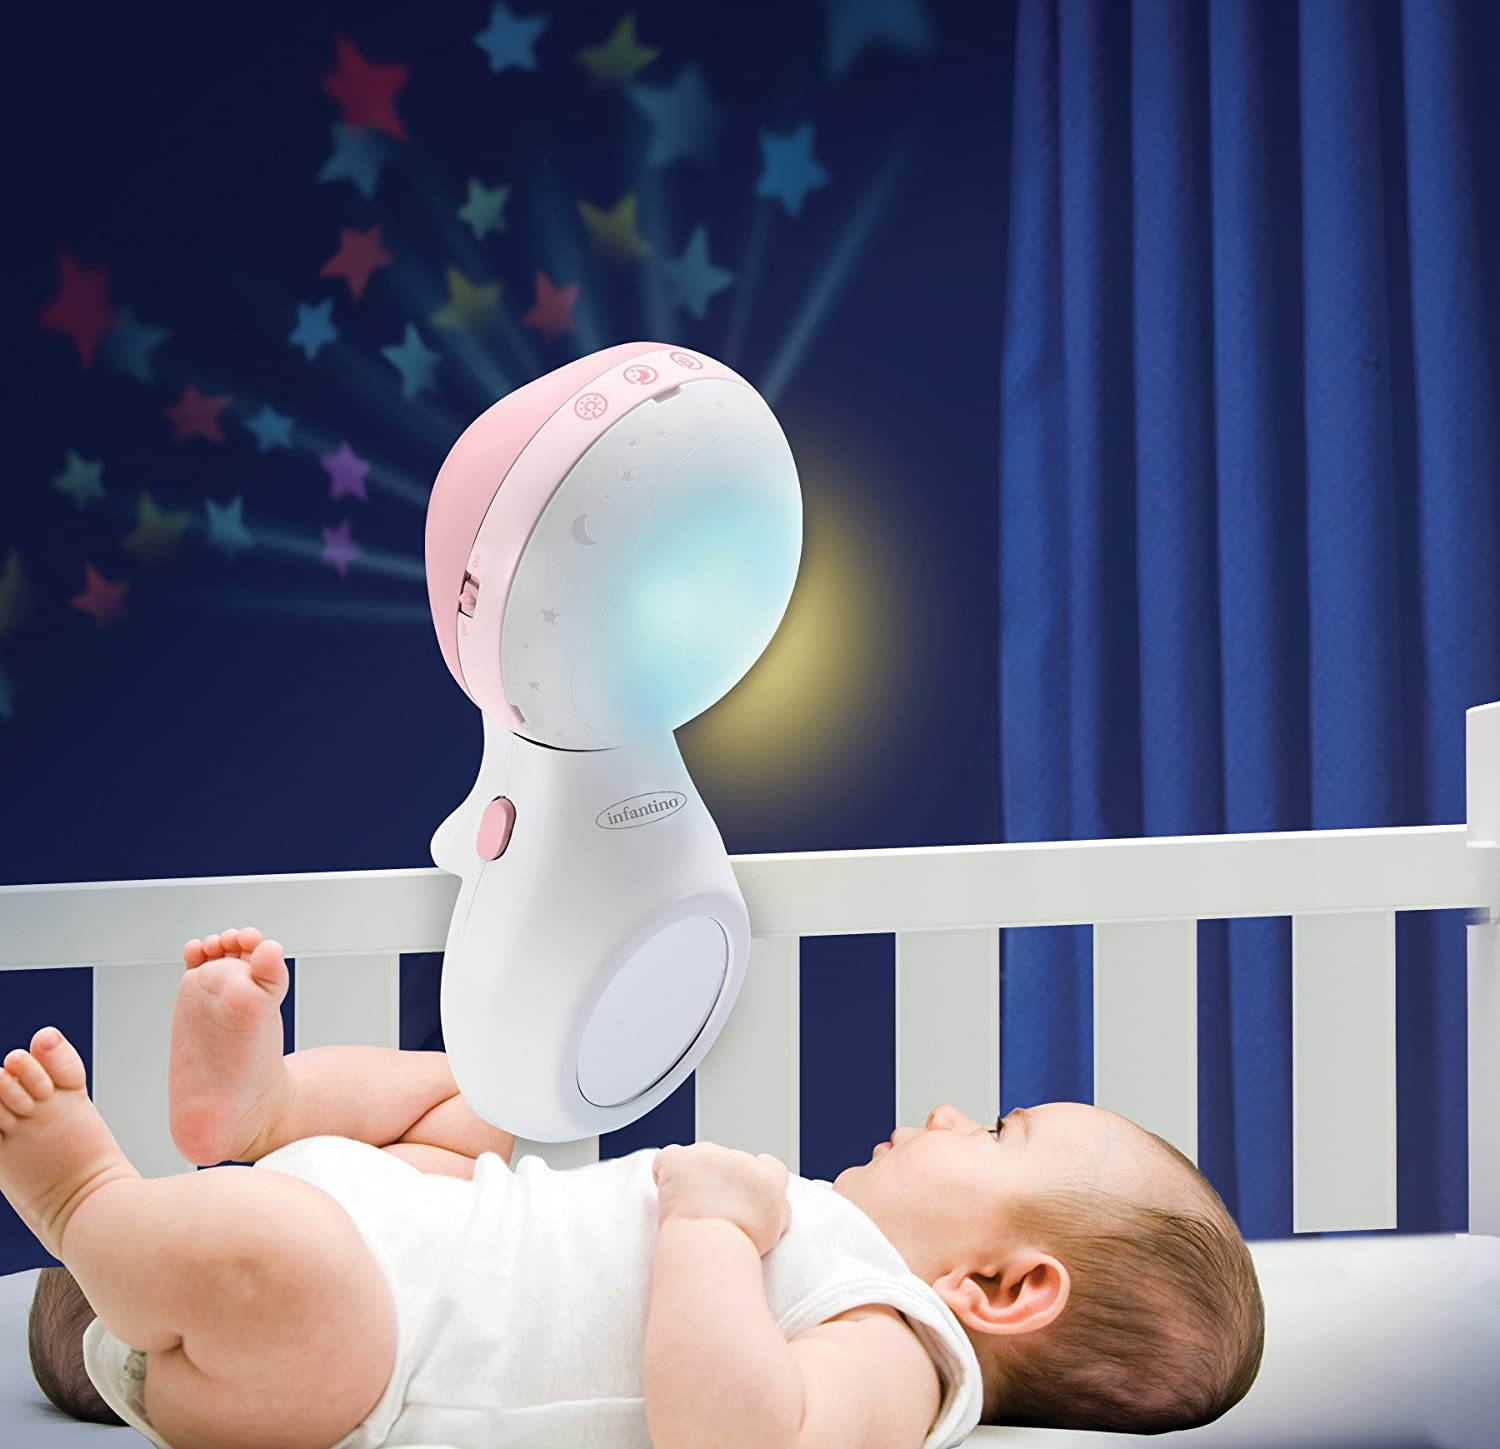 wake up mode simulates daylight cot /& table top night light Grey Infantino 3 in 1 Projector musical mobile